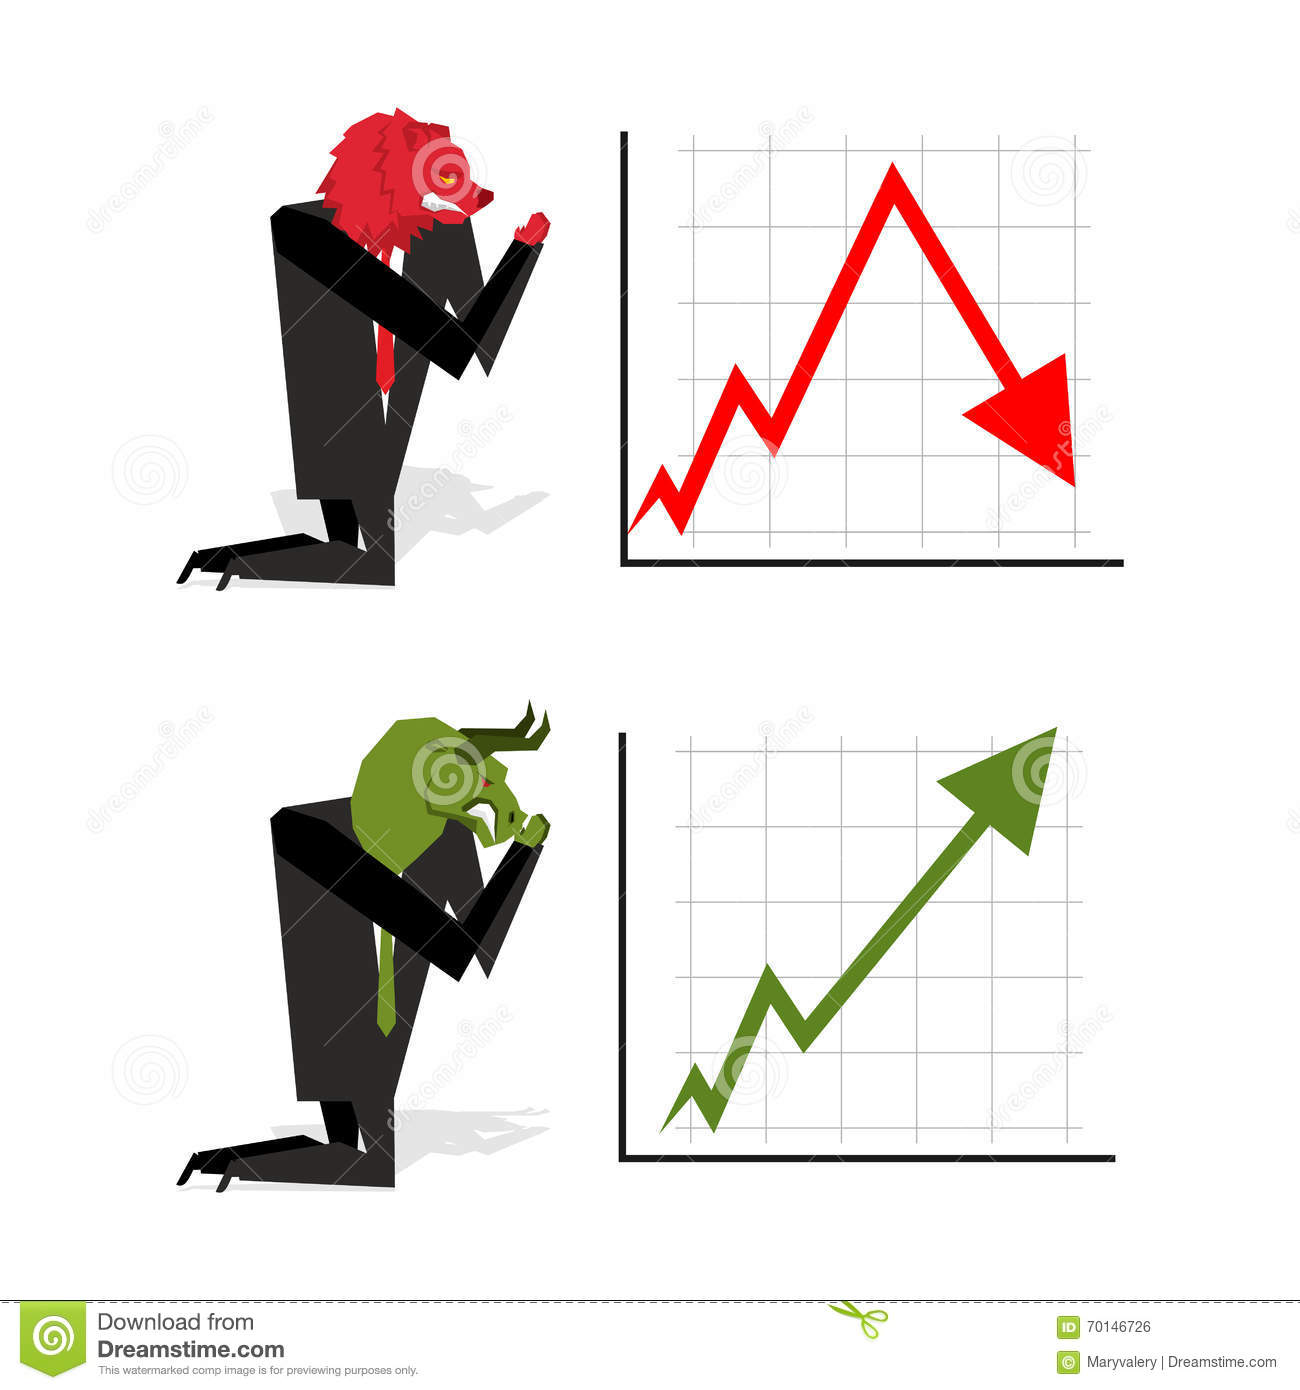 Bull and bear pray to bet on stock exchangeeen up arrow red download bull and bear pray to bet on stock exchangeeen up arrow red altavistaventures Images